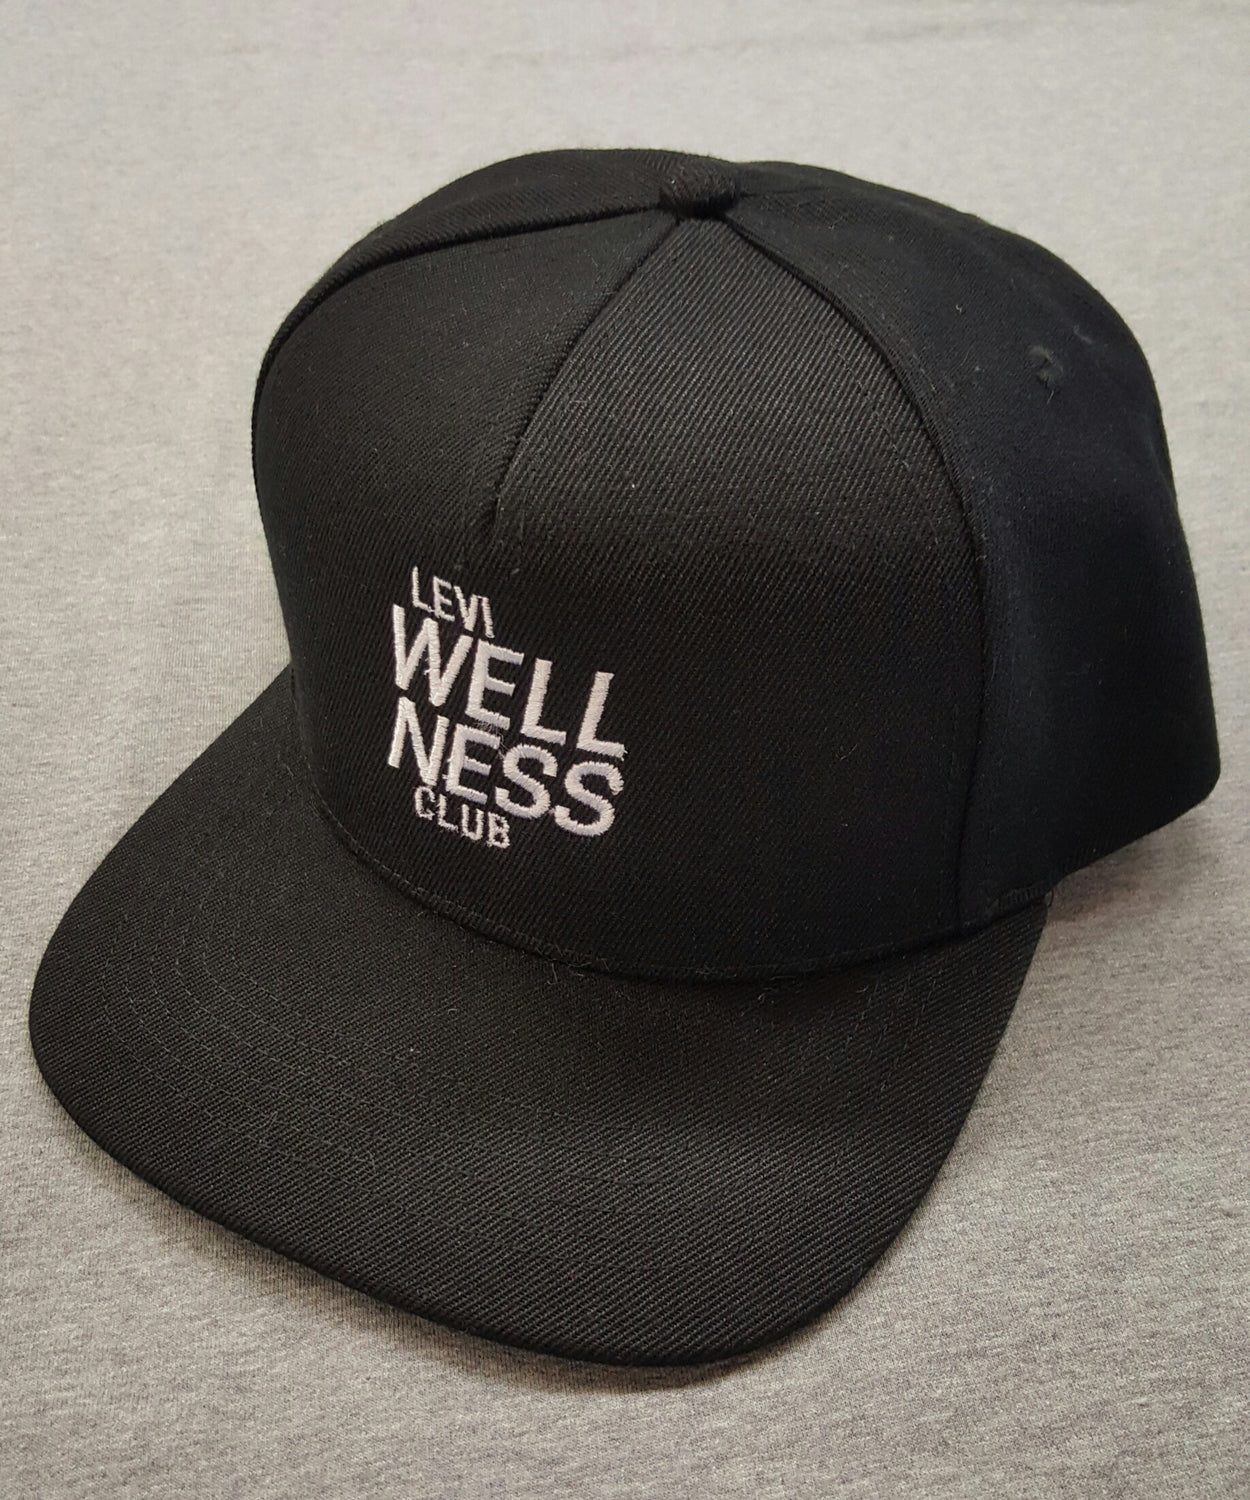 Levi Wellness Club Snapback